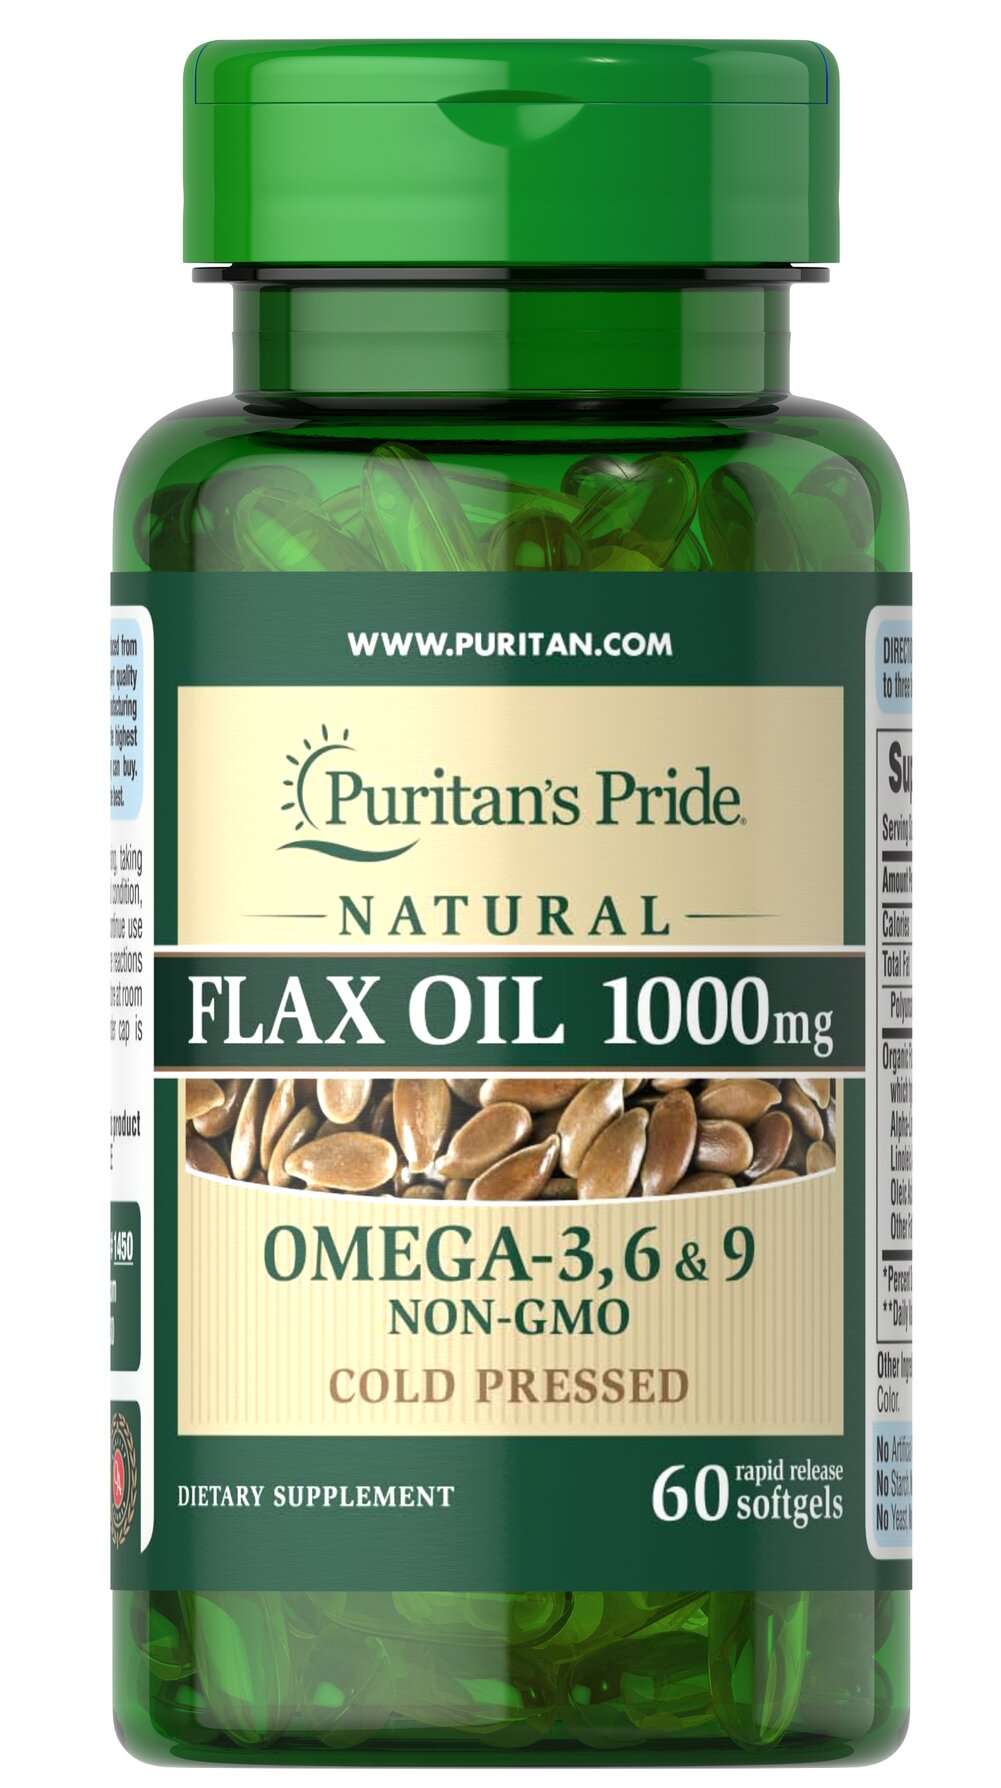 Natural Flax Oil 1000 mg <p>Flaxseed oil is a premium source of Alpha Linolenic Acid (Omega-3) and Linoleic Acid (Omega-6), two essential fatty acids that can't be made by the body and must be obtained from diet. Flaxseed oil is one of the most concentrated vegetarian sources of Omega-3 fatty acids found in nature. The Omega-3 fatty acids contribute to heart health and provide an energy source for the body.** Flaxseed oil also supports skin health.** In addition to the benefits for hea